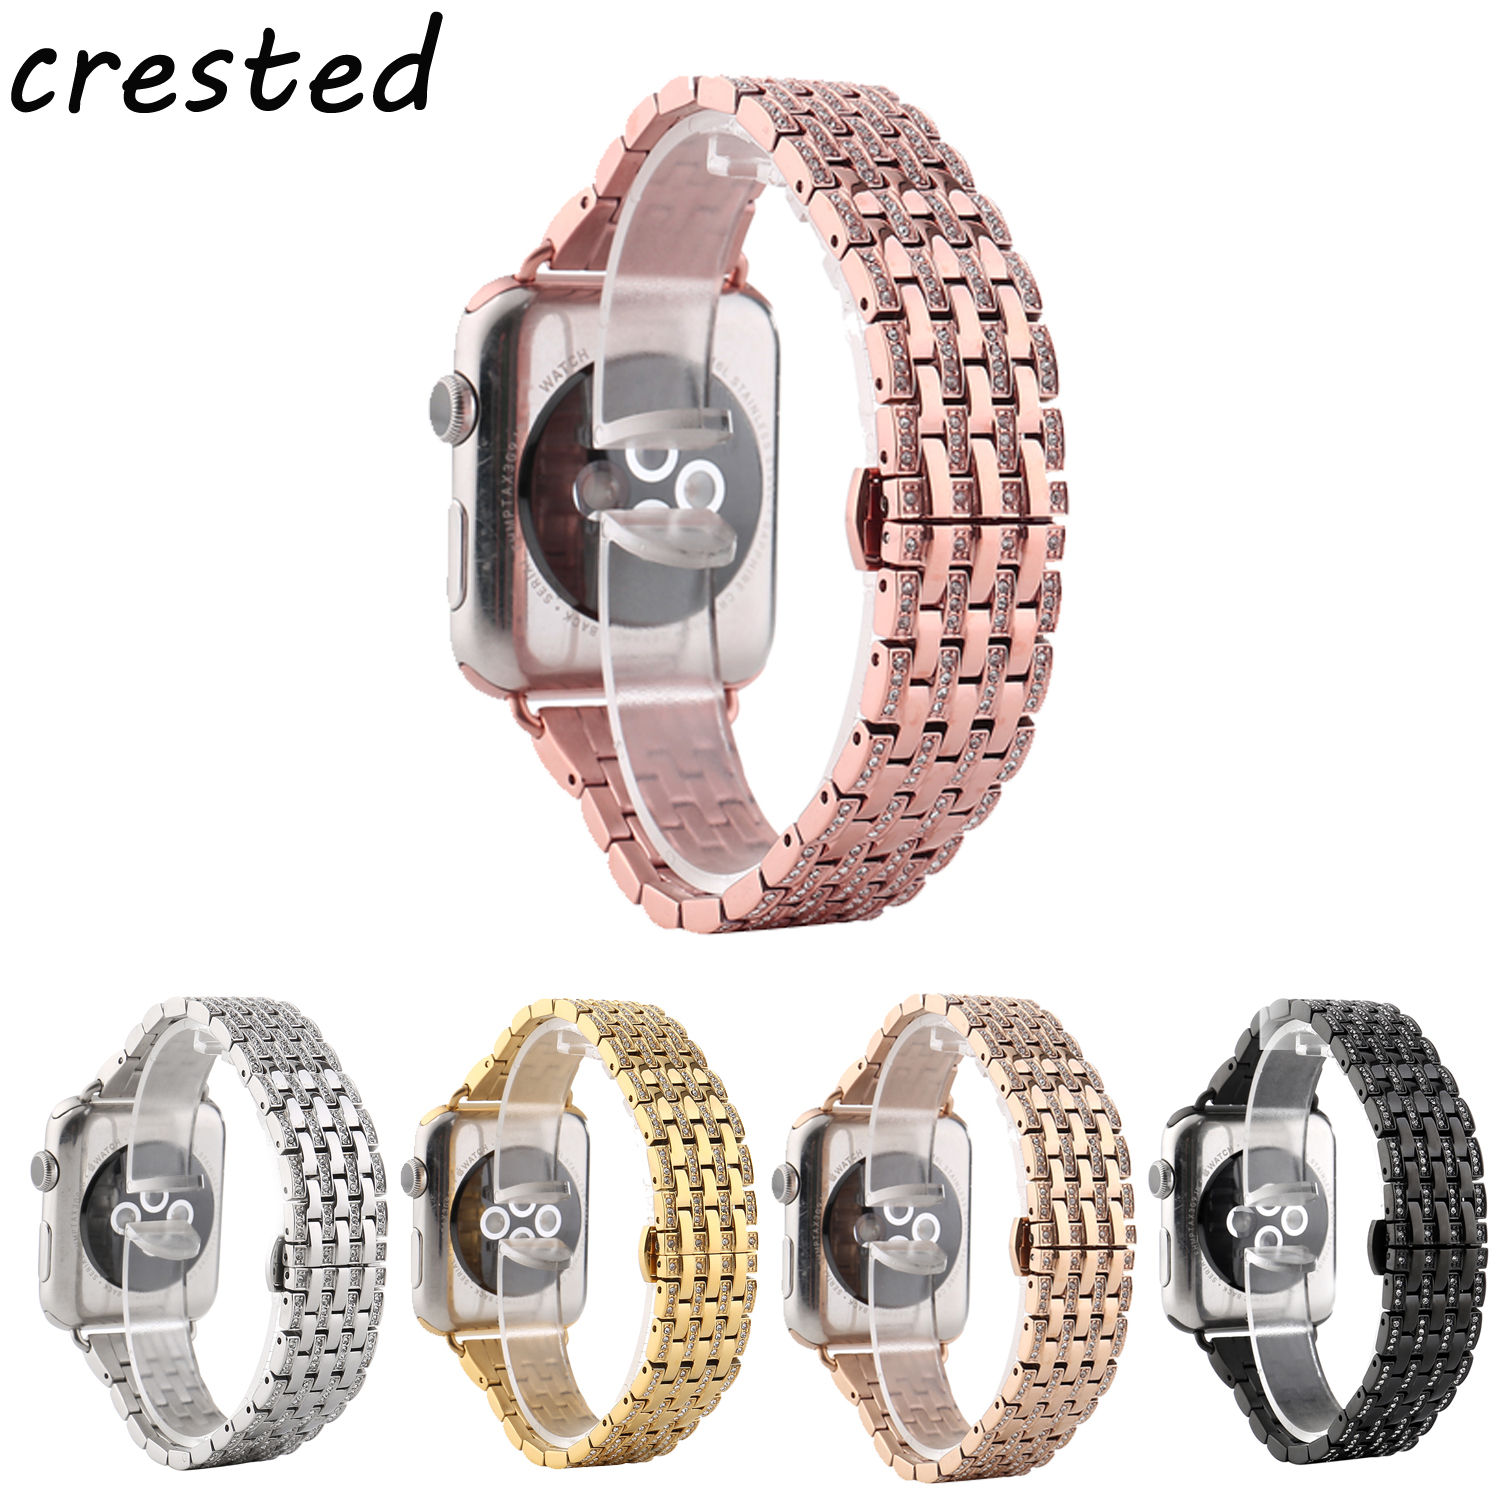 CRESTED stainless steel watch band strap for apple watch 42mm/38 bracelet watchband butterfly diamond strap for iwatch 1/2 crested stainless steel watch band strap for apple watch 42 mm 38 mm link bracelet replacement watchband for iwatch serise 1 2